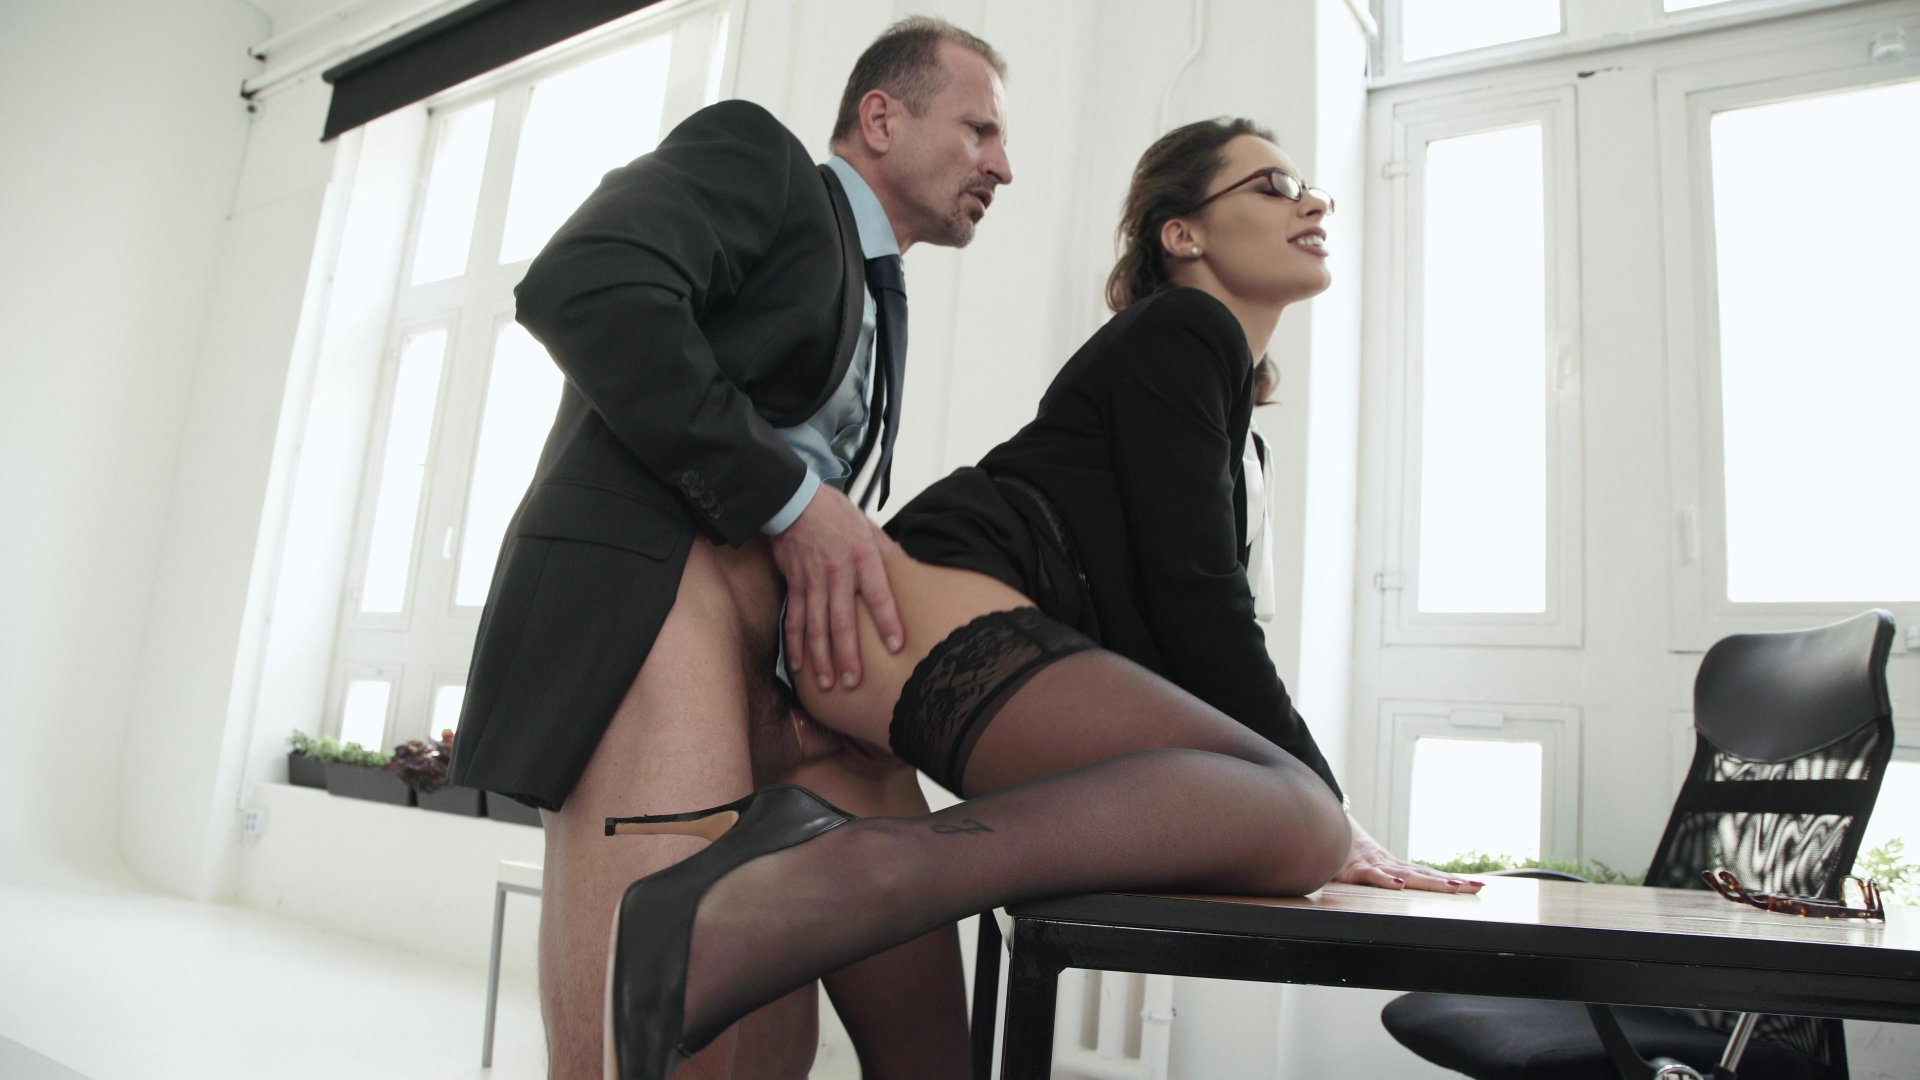 Bridgette b and her husband's boss are often secretly fucking while no one is watching them